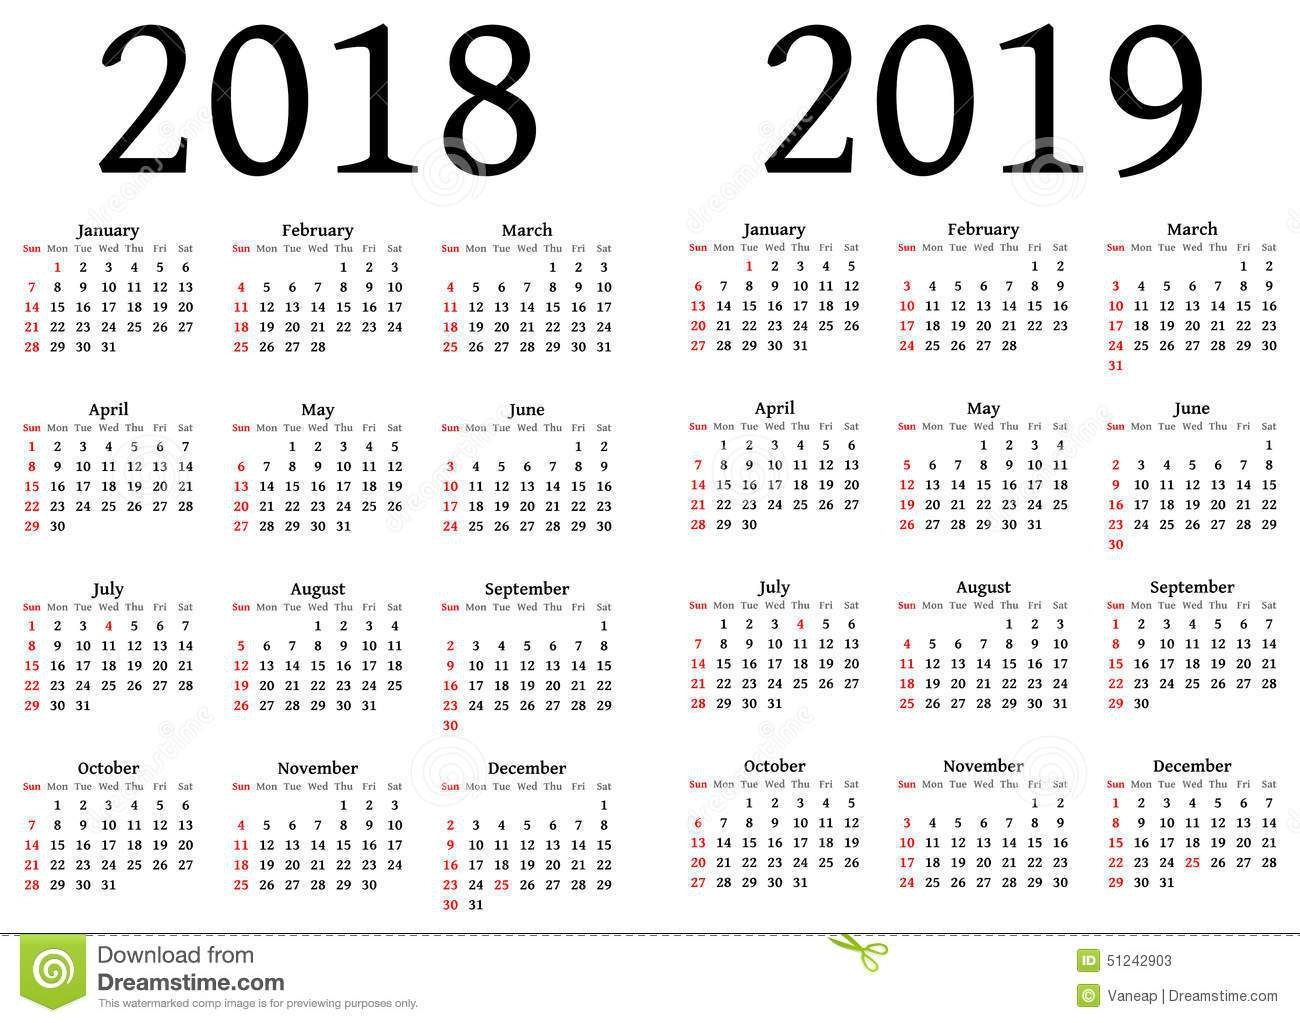 Julian Calendar – Printable Year Calendar in 2018 Julian Calendar